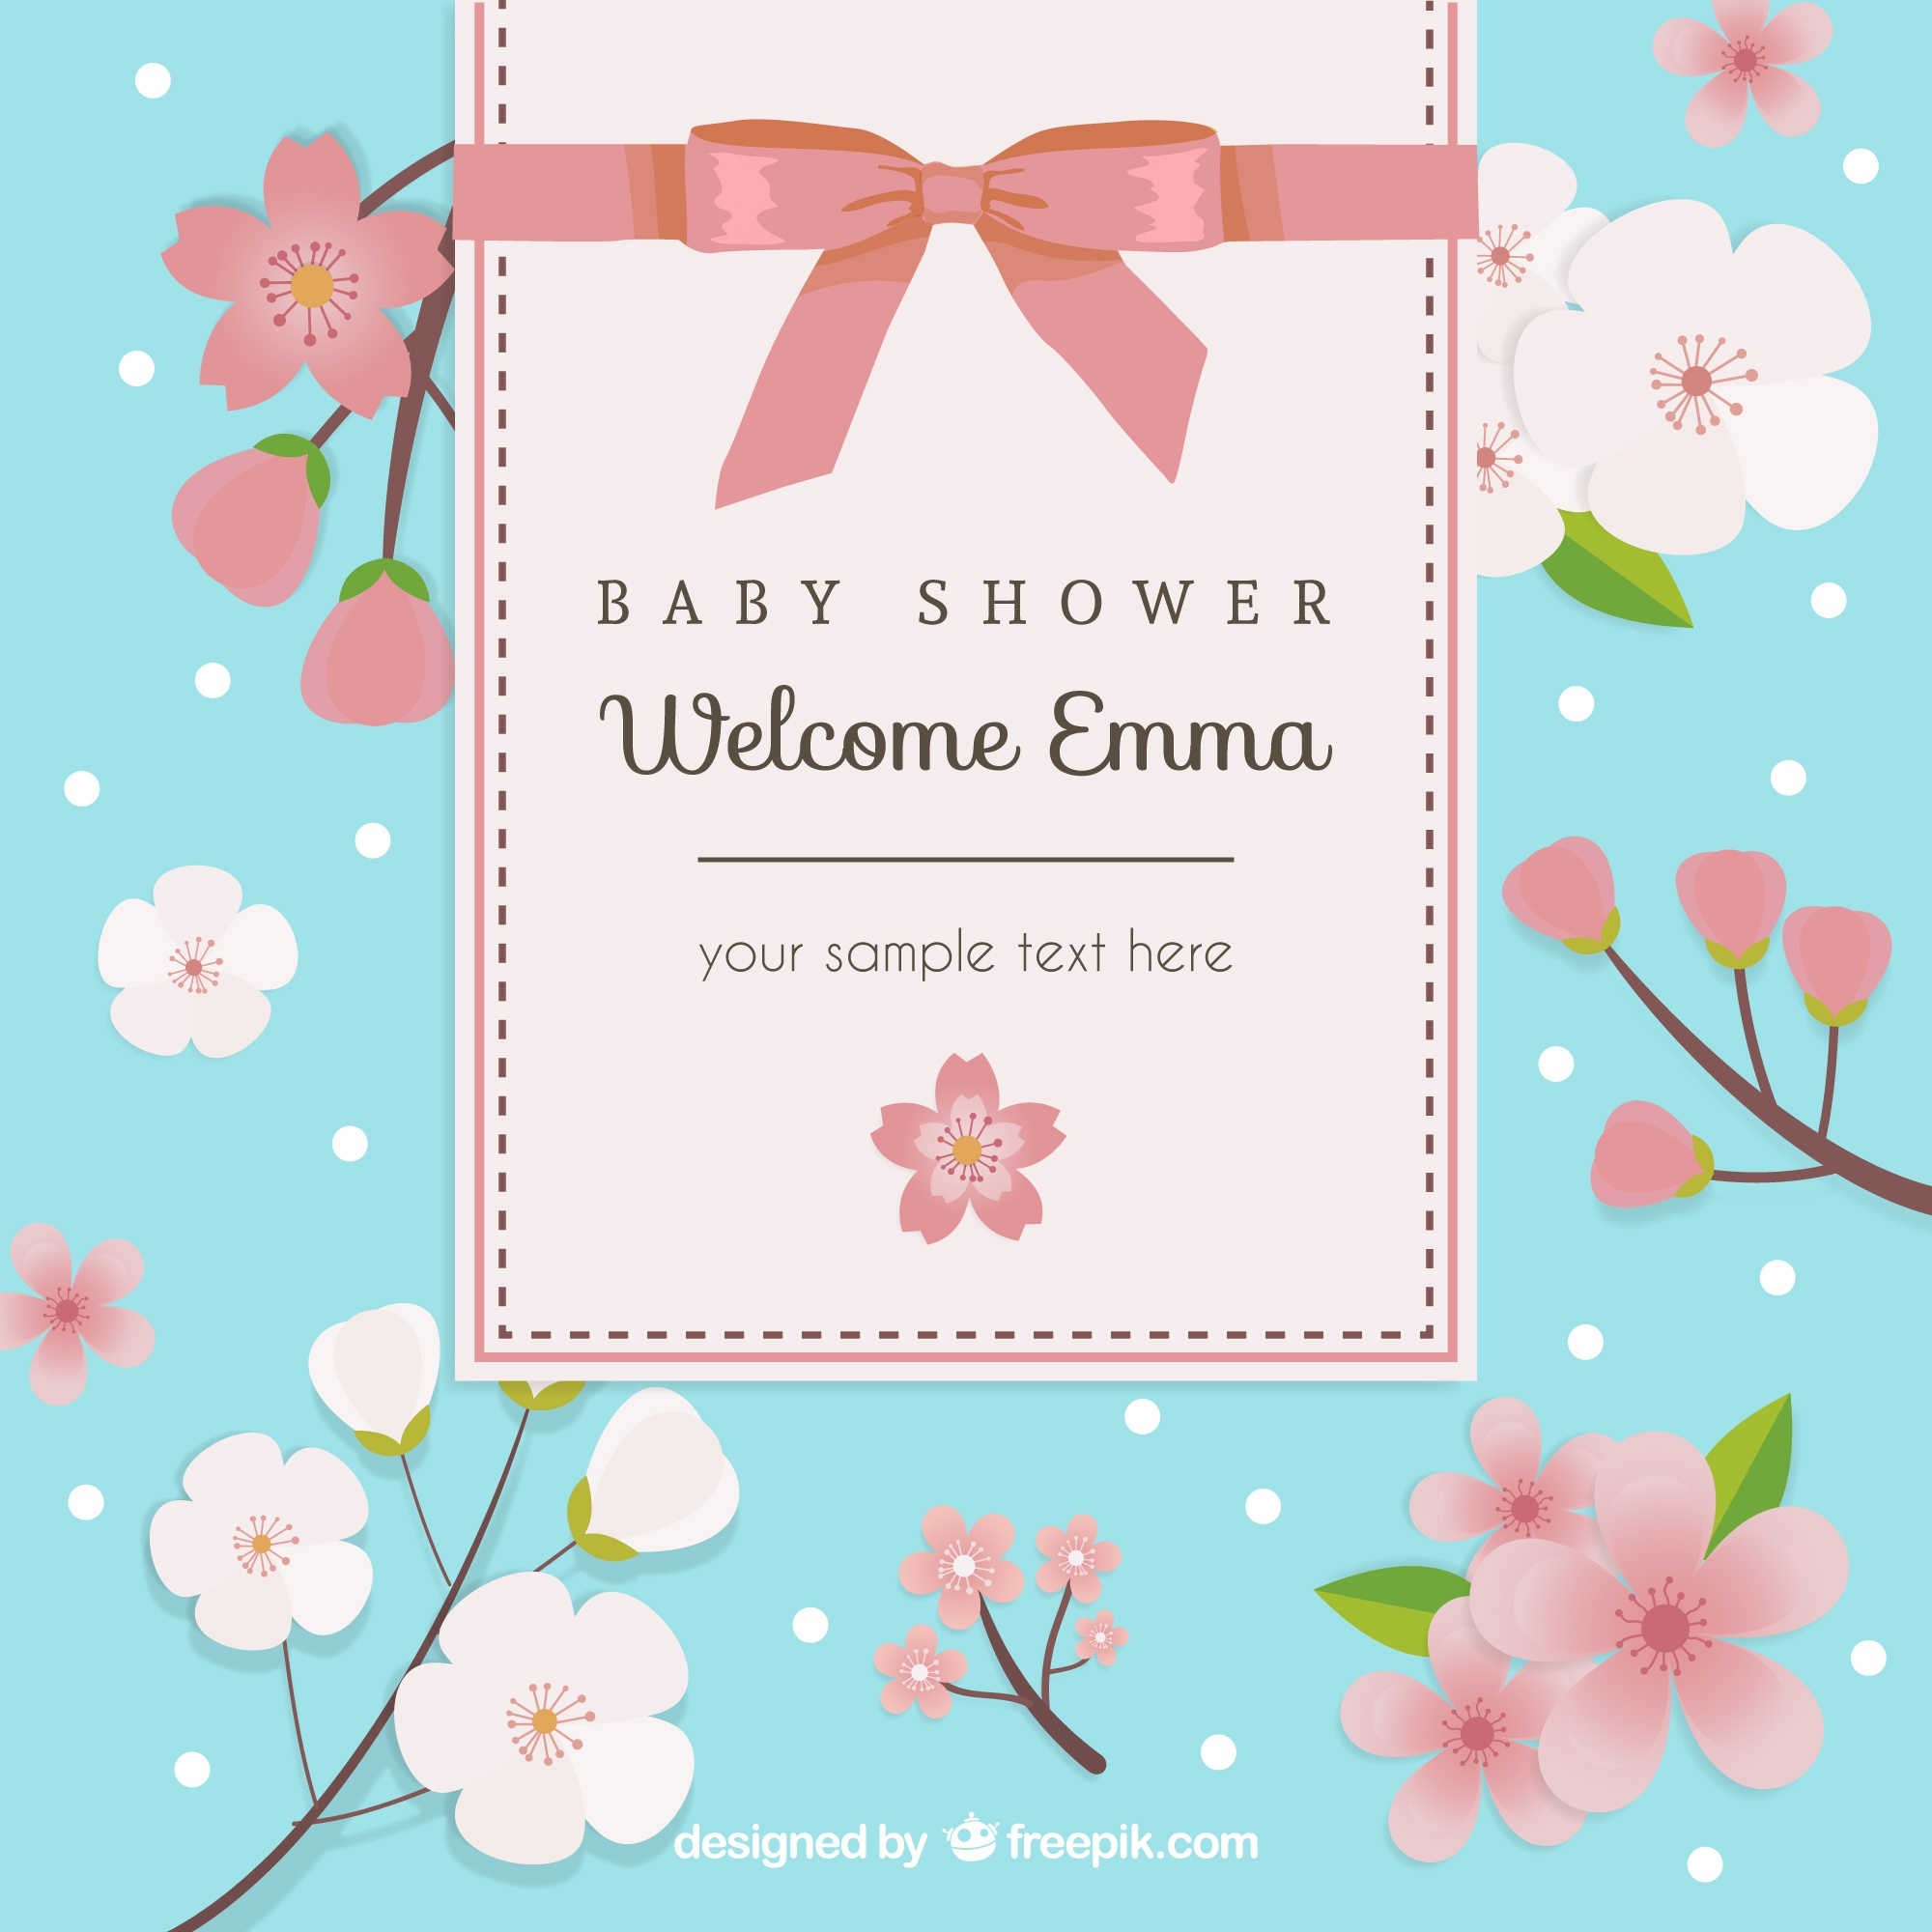 Floral card for baby shower